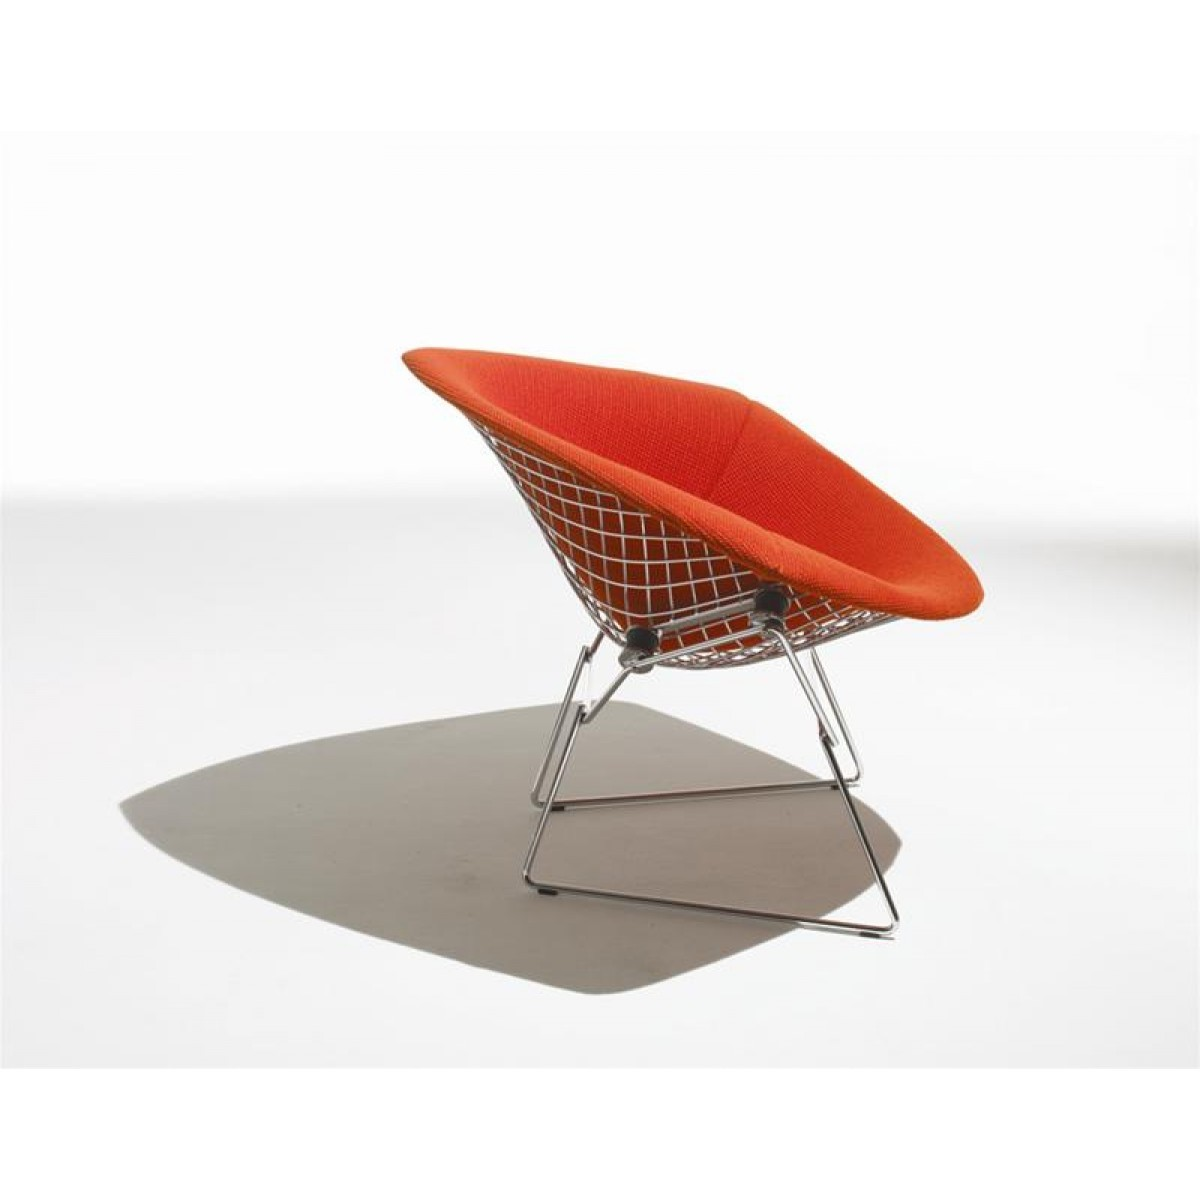 Knoll International Diamond Großer Sessel Knoll International Diamond Großer Sessel Von Goodform Ch